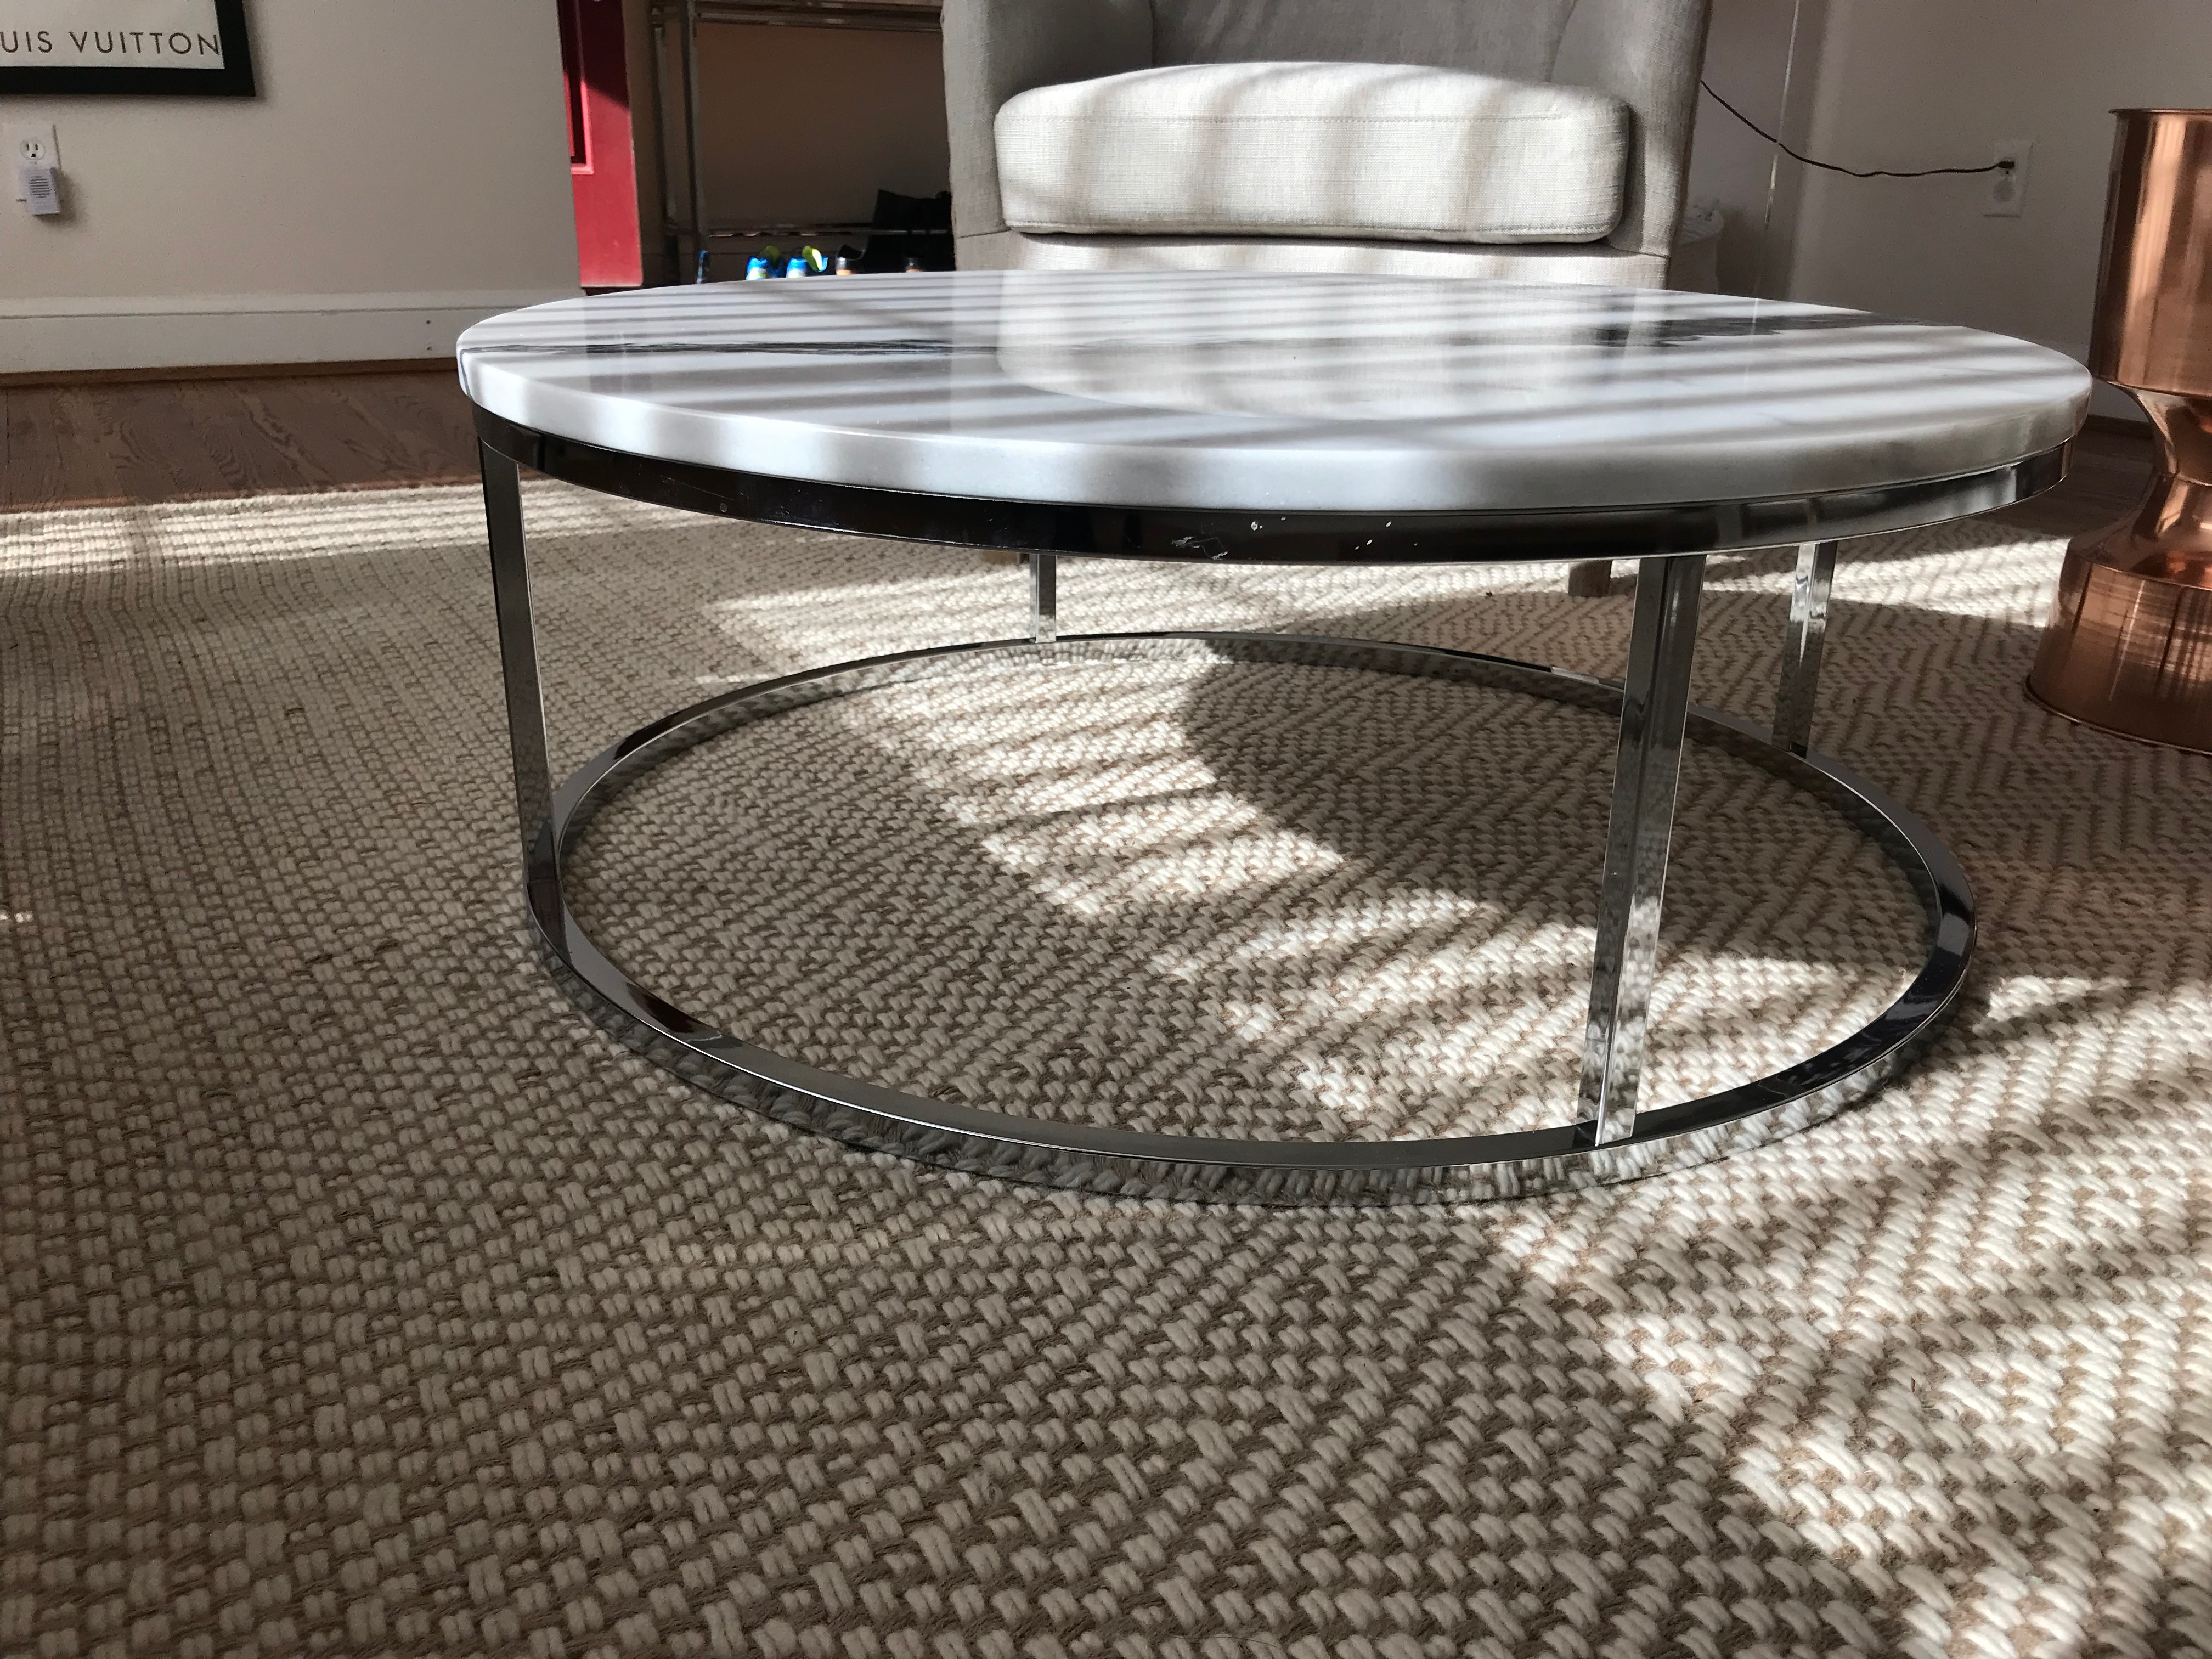 Cb Marble Coffee Table Slab White Marble Coffee Table Reviews - Cb2 smart round coffee table